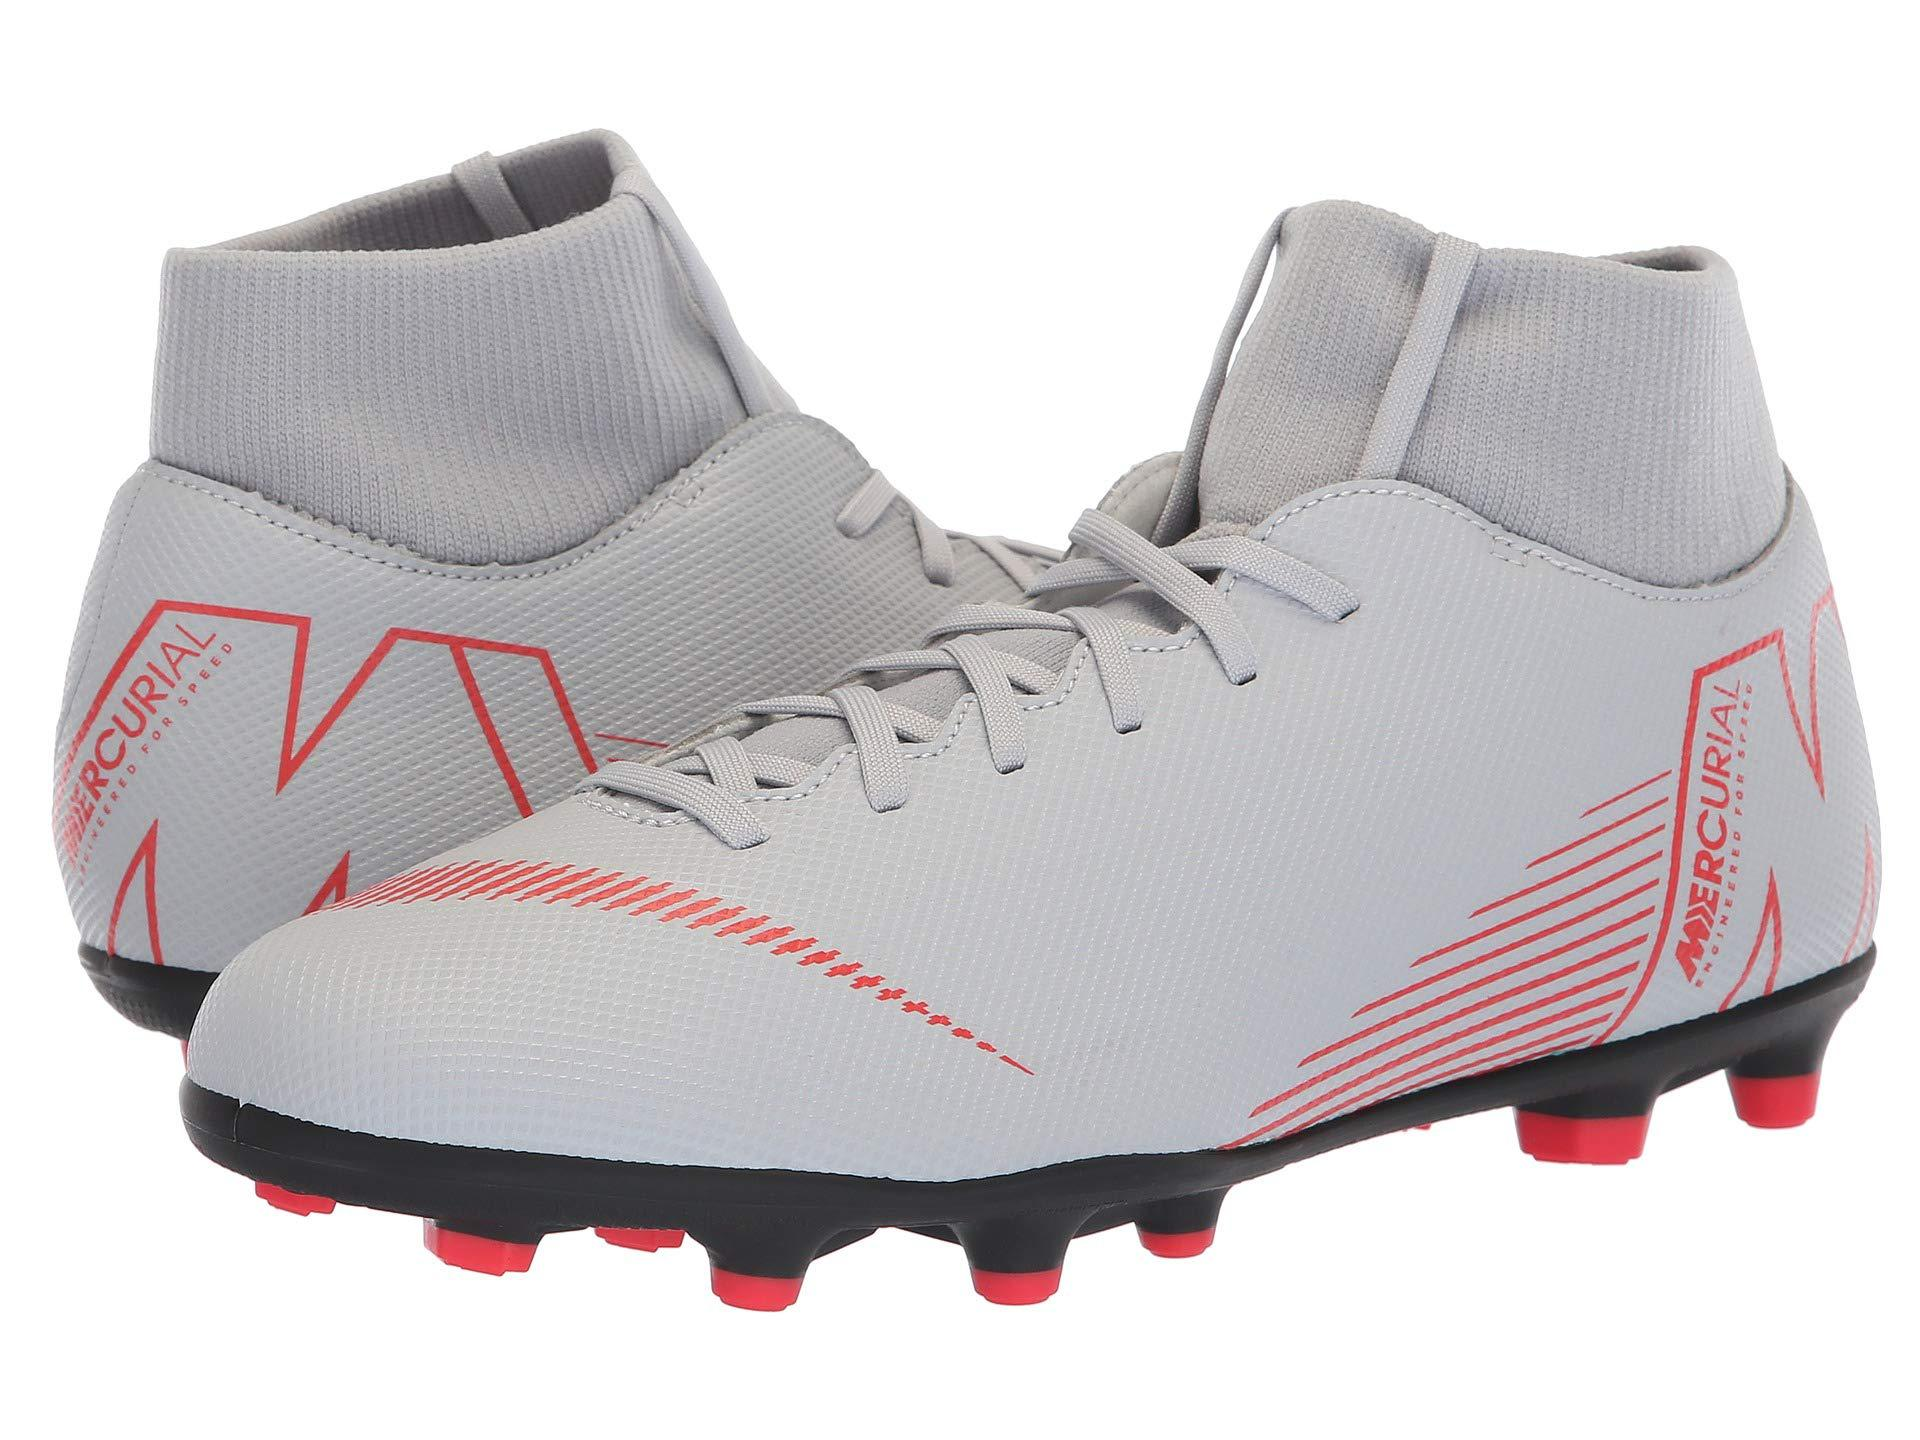 74e193a3a19 Nike - Gray Adults  Superfly 6 Club Fg mg Fitness Shoes for Men -. View  fullscreen